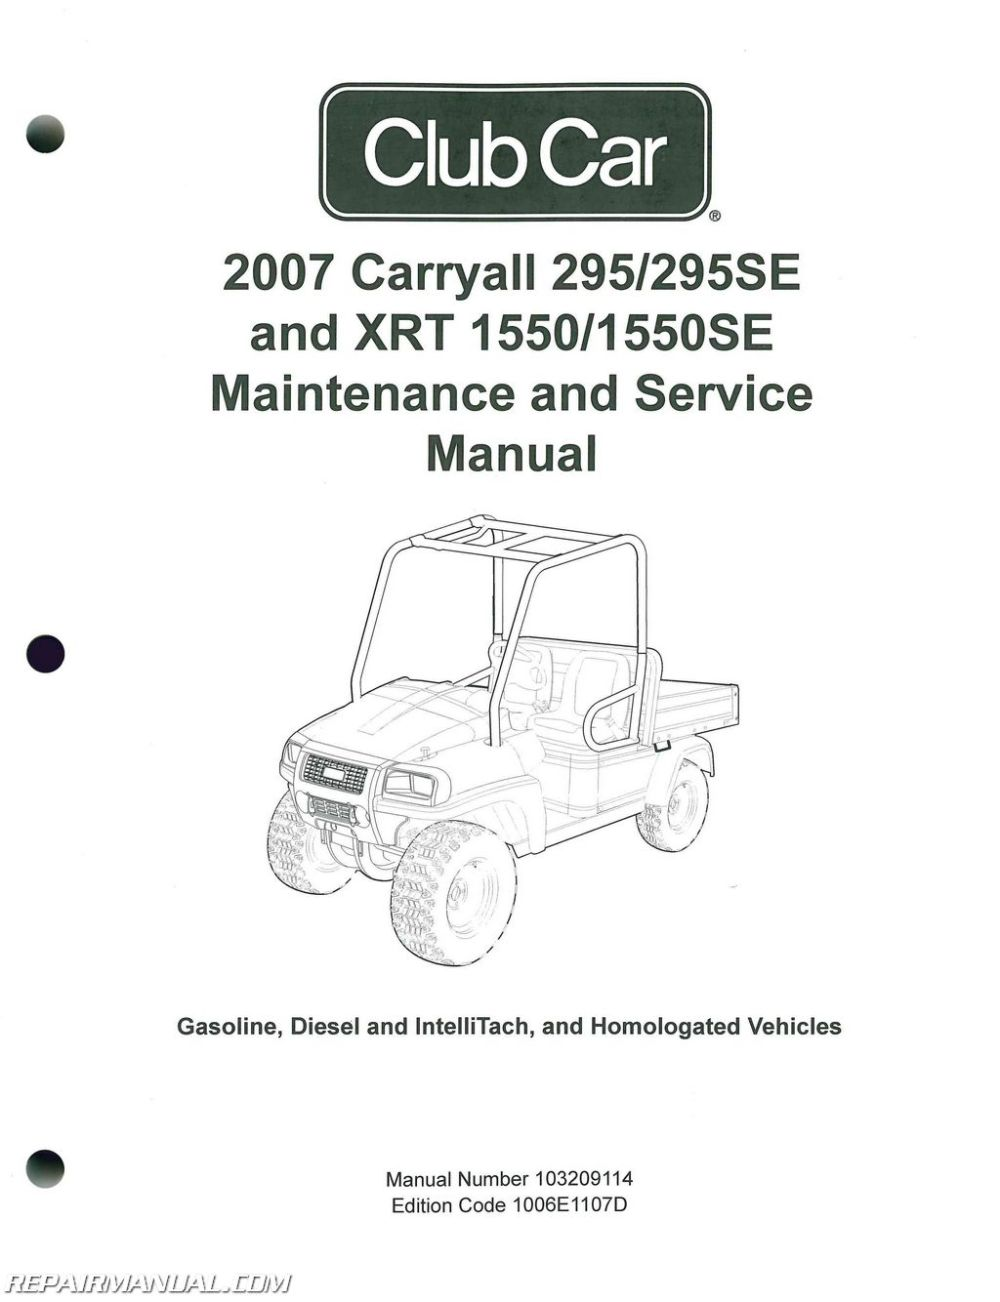 medium resolution of 2007 club car carryall service manual 295 295se xrt 1550 1550se club car golf cart wiring diagram for 1996 club car carryall 6 wiring diagram